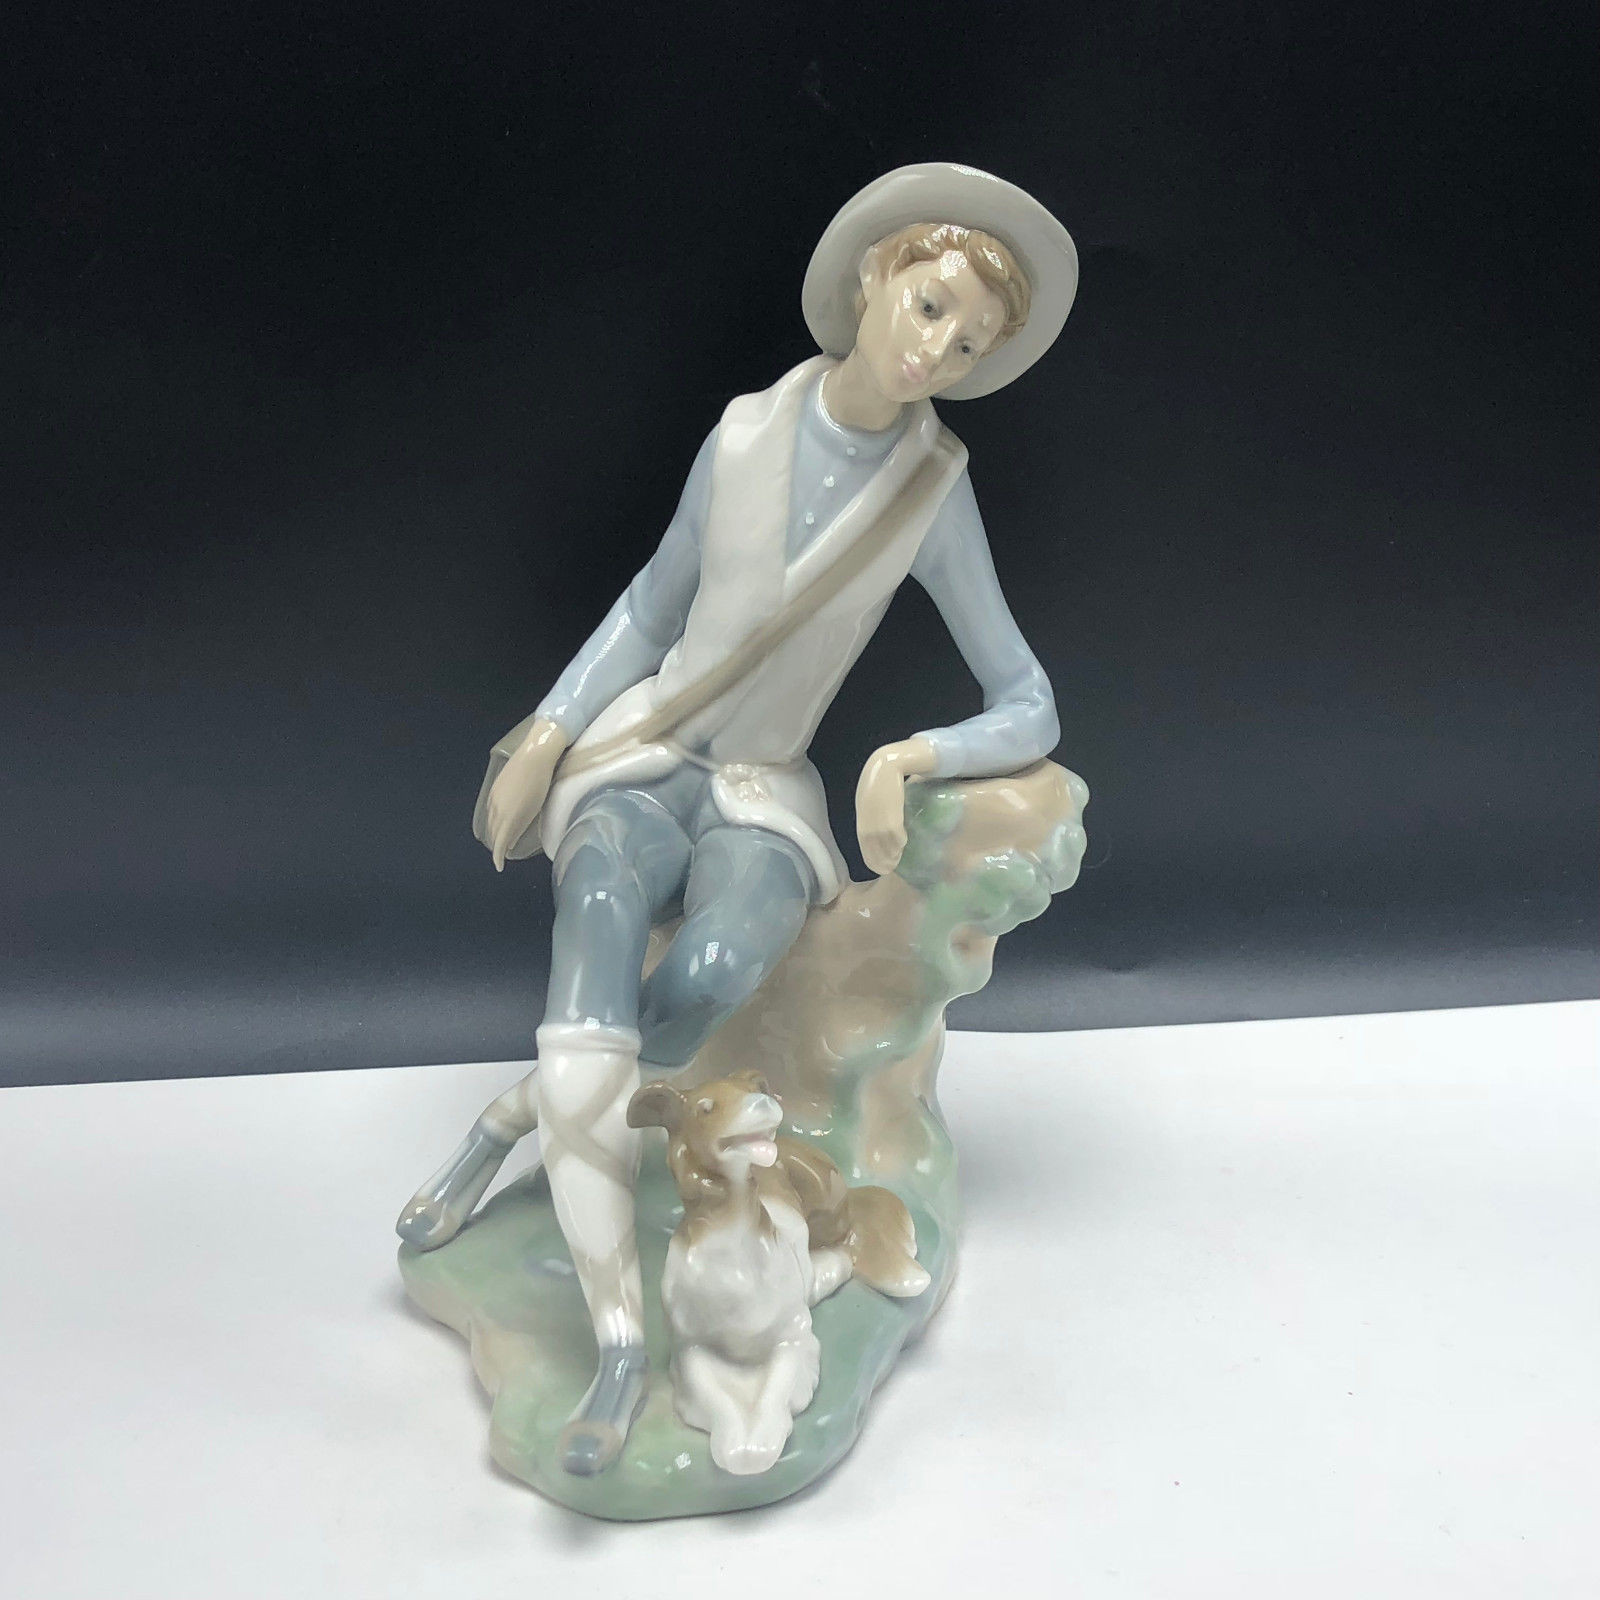 Primary image for LLADRO FIGURINE NAO SPAIN SCULPTURE 4659 shepard boy hat puppy dog pastor daisa